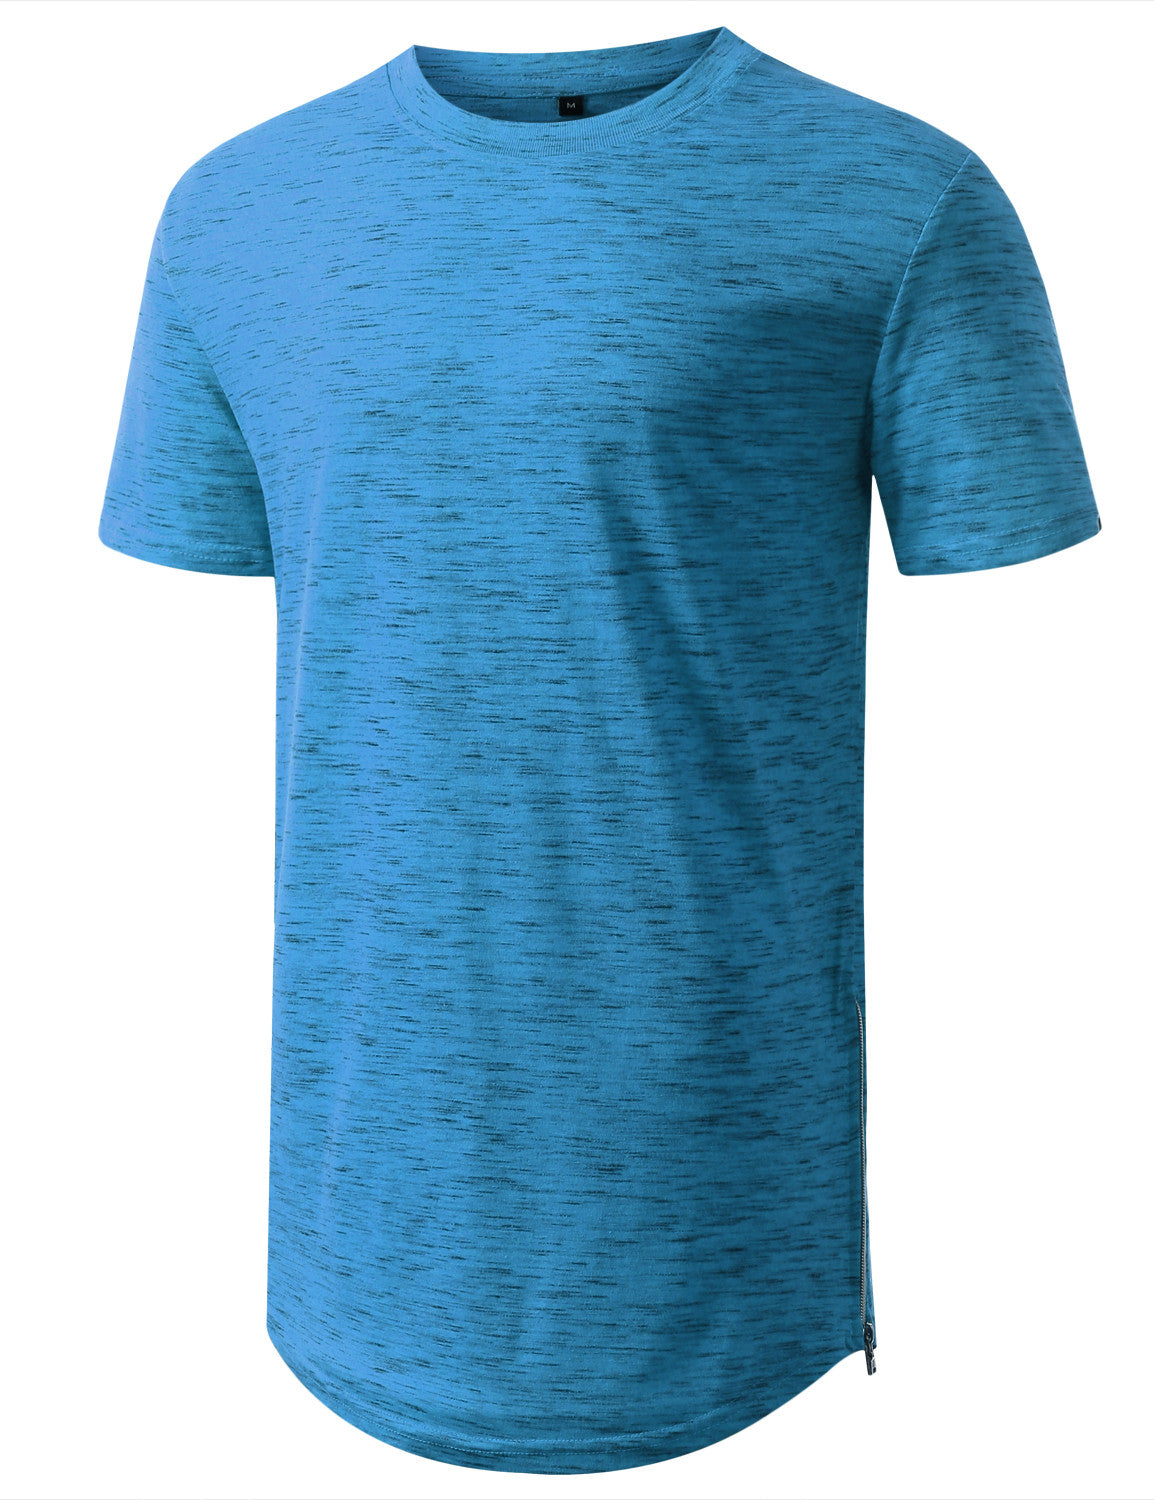 MARLEDLTBLUE Marled Longline Crewneck Tshirts with Side Zipper